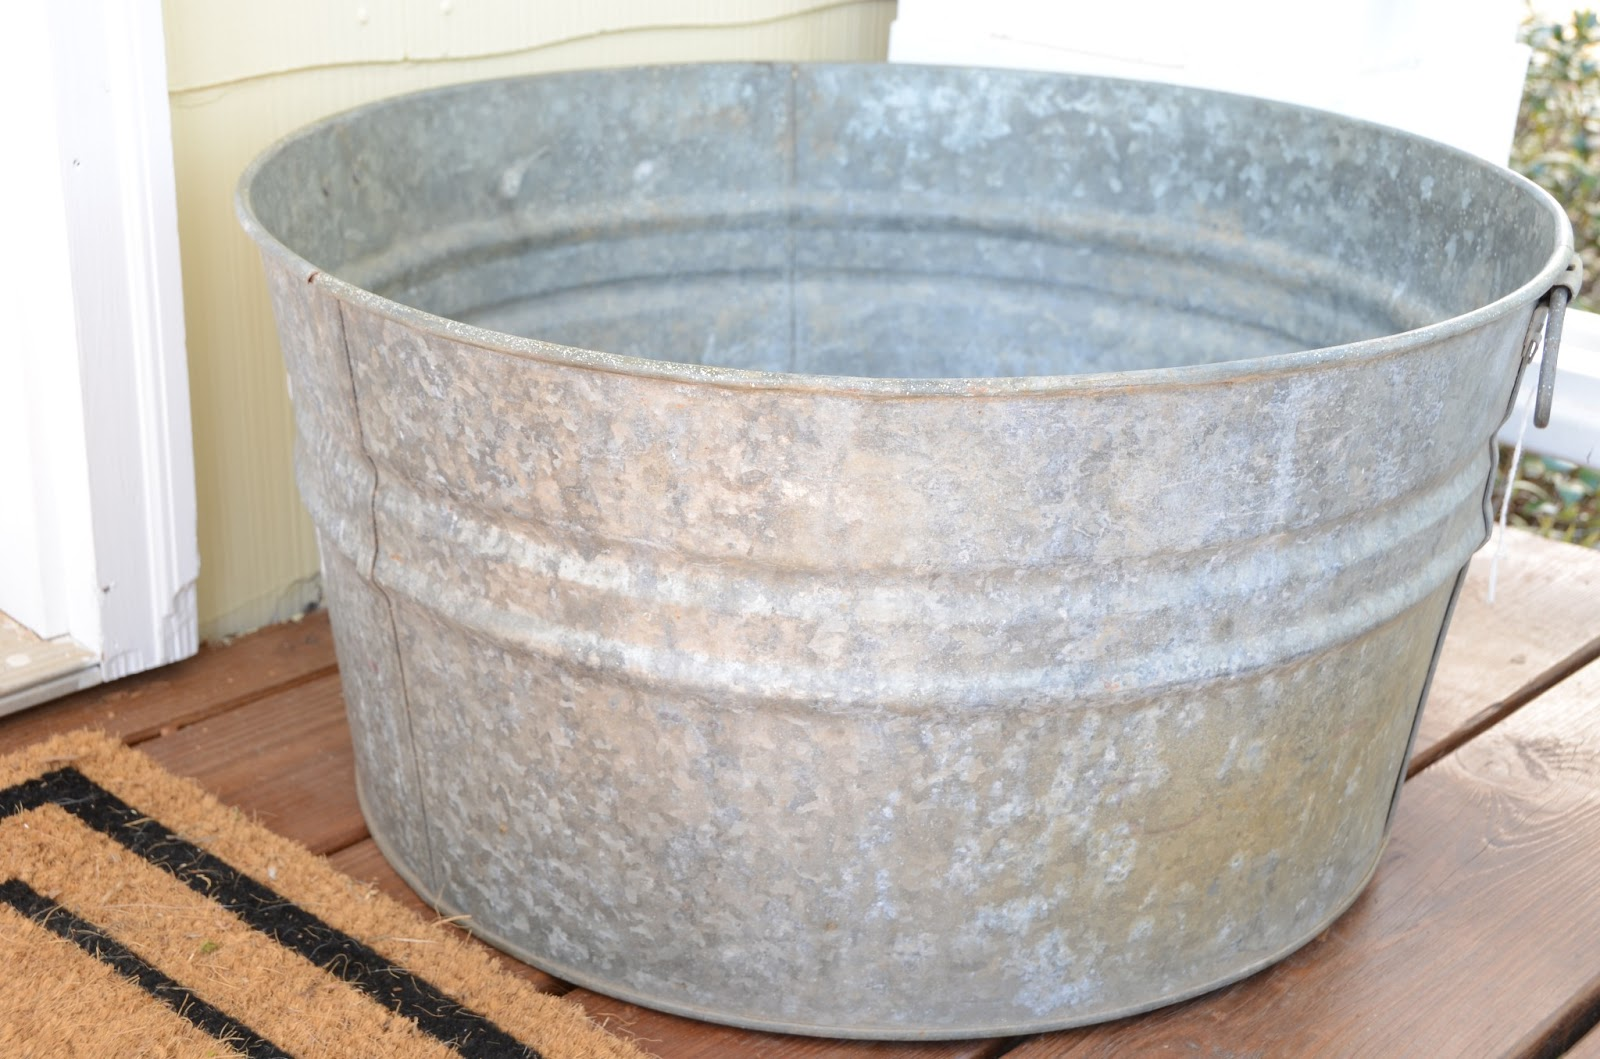 Galvanized Cowboy Bathtub 17 Galvanized Trough Bathtub